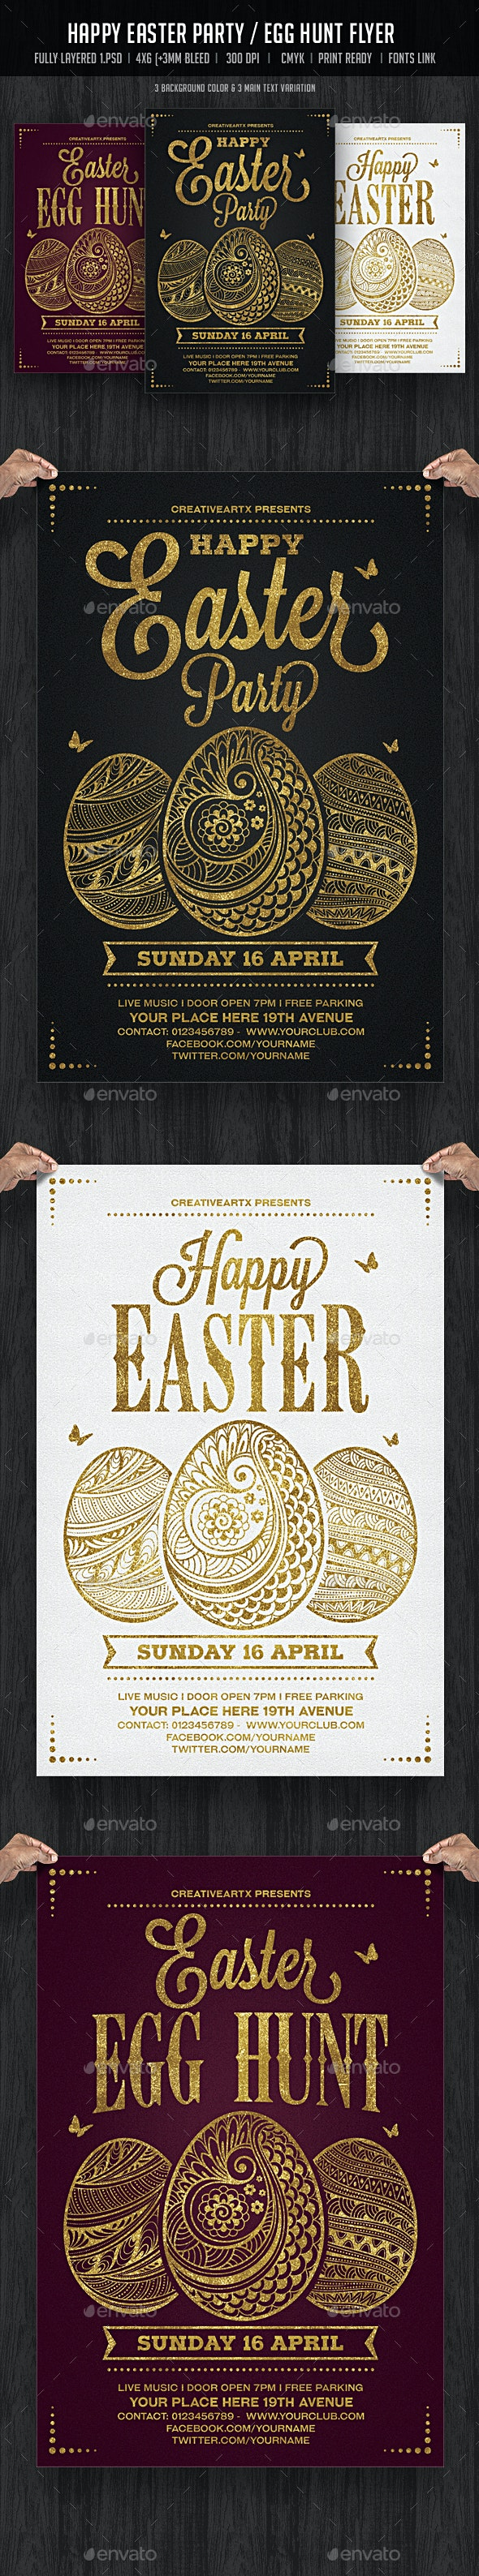 Happy Easter Party / Egg Hunt Flyer - Events Flyers